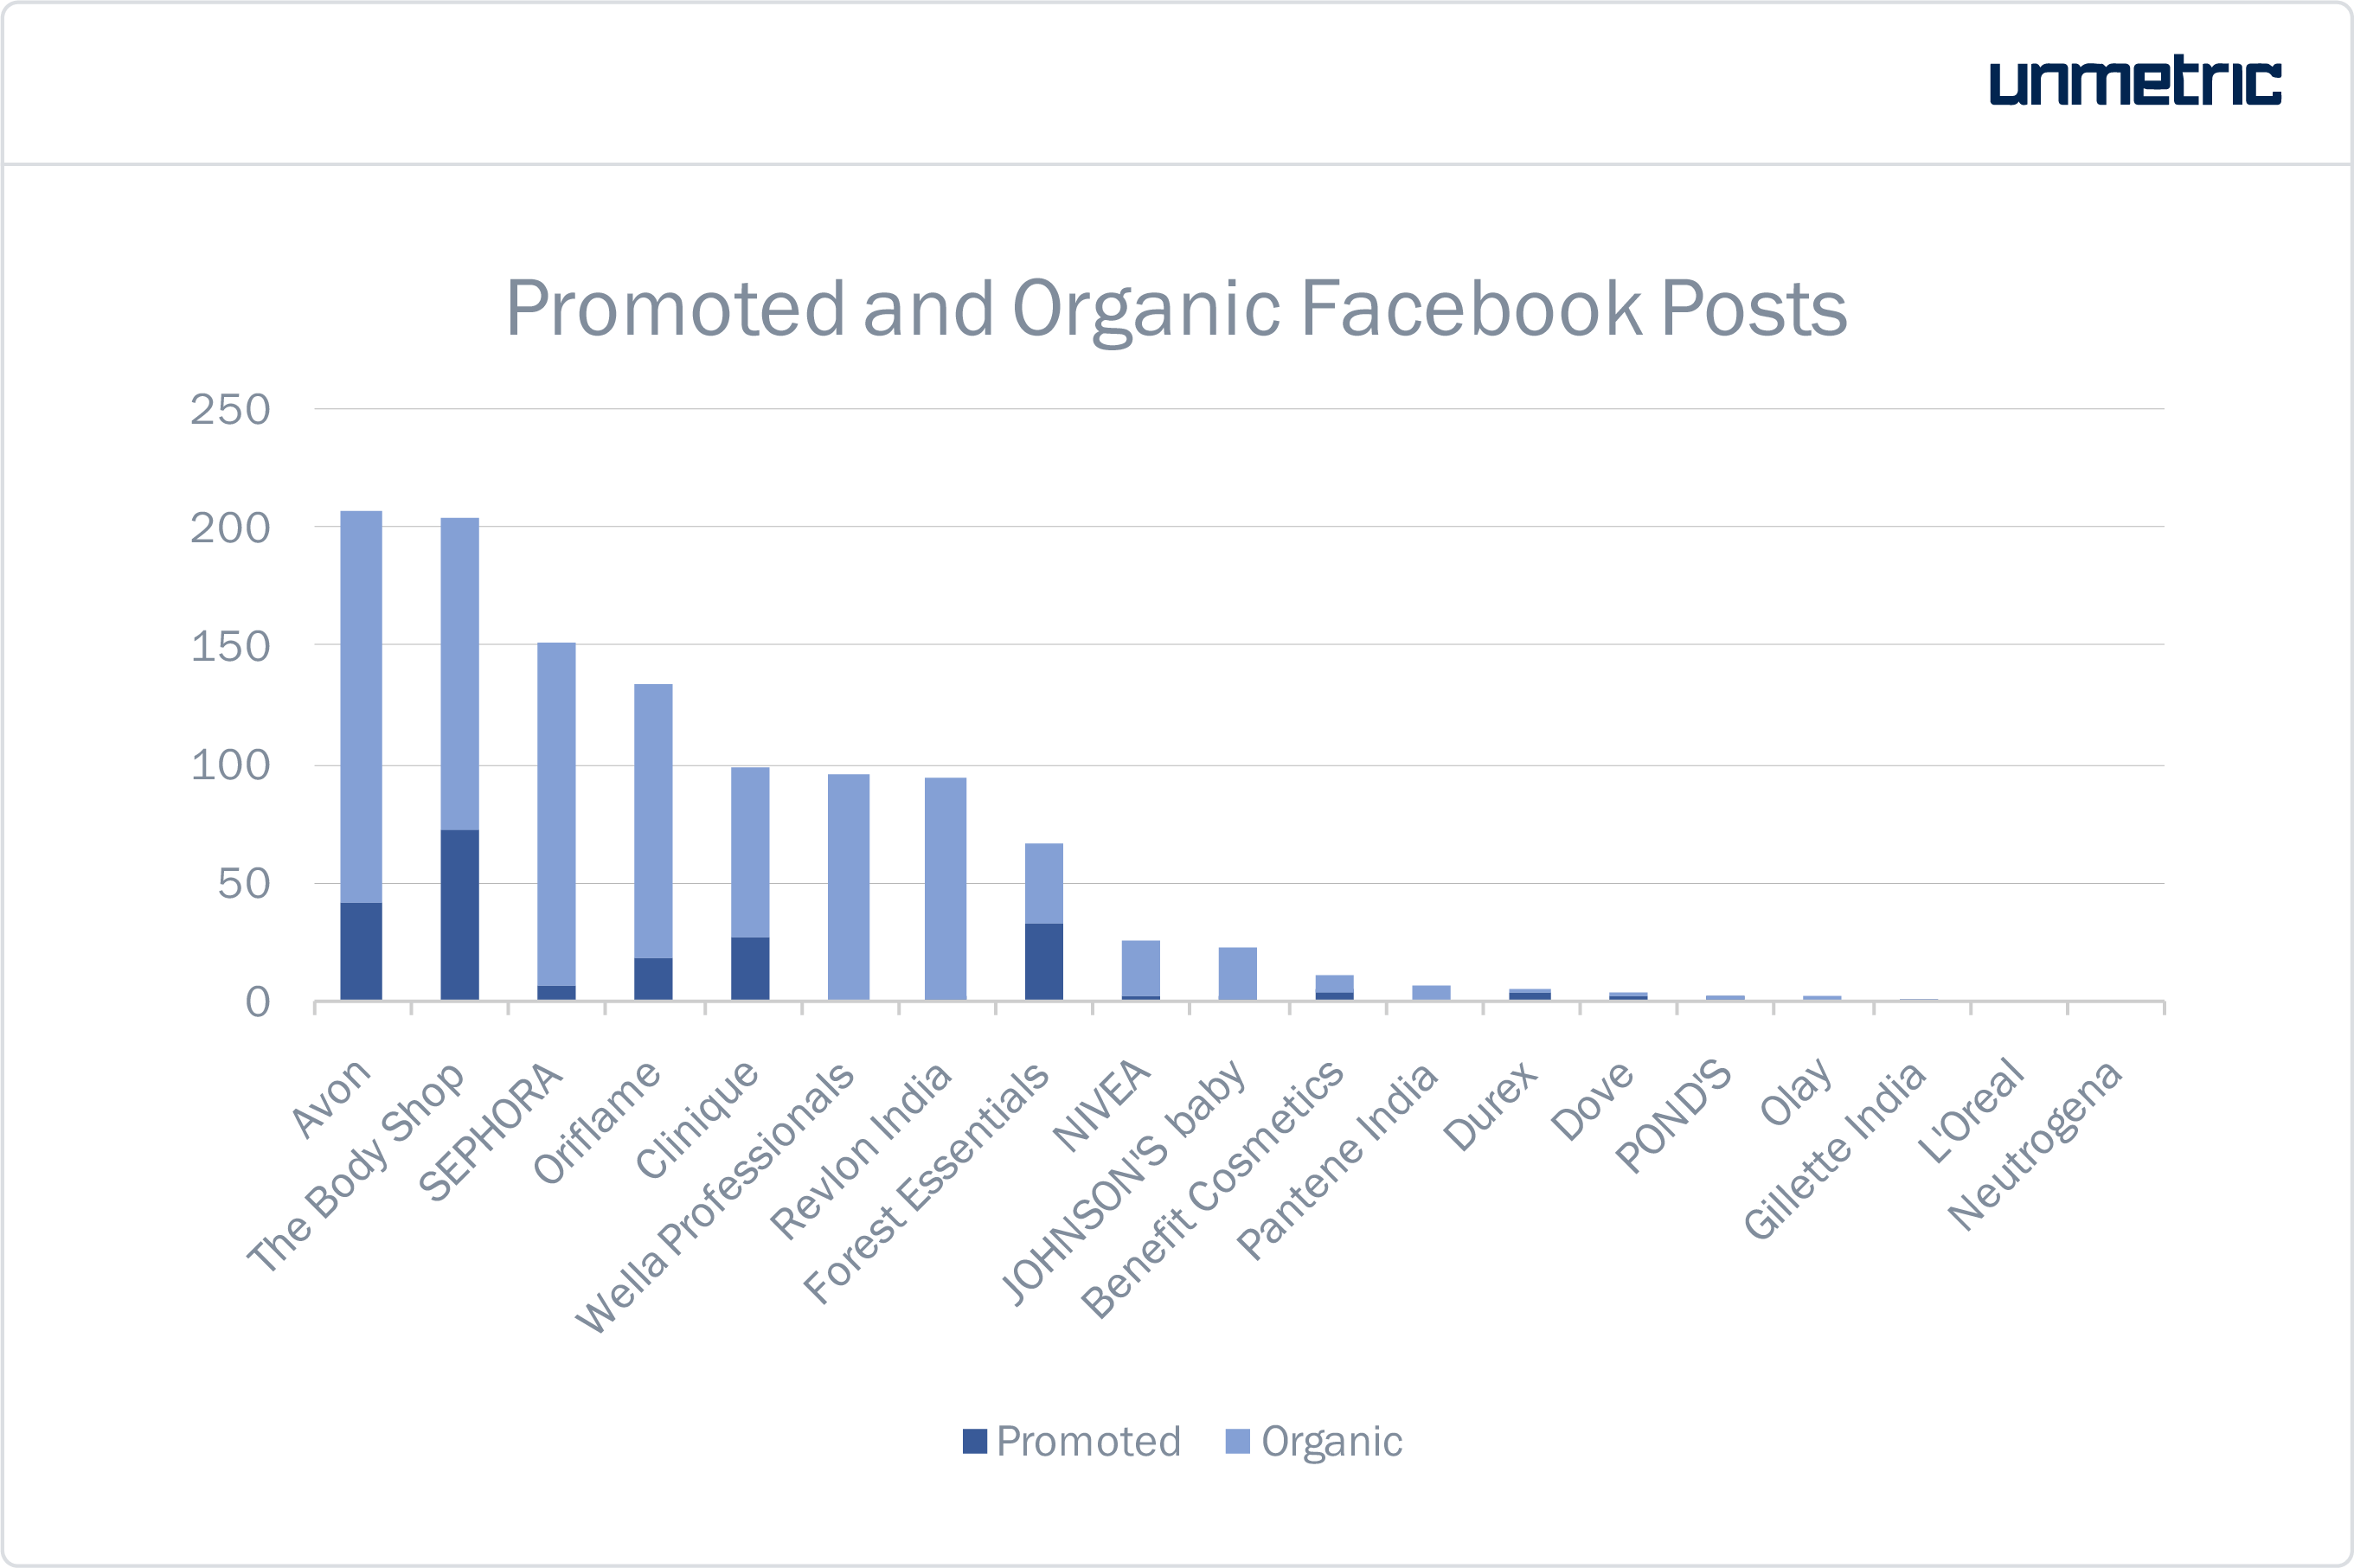 personal care brands in india promoted facebook posts